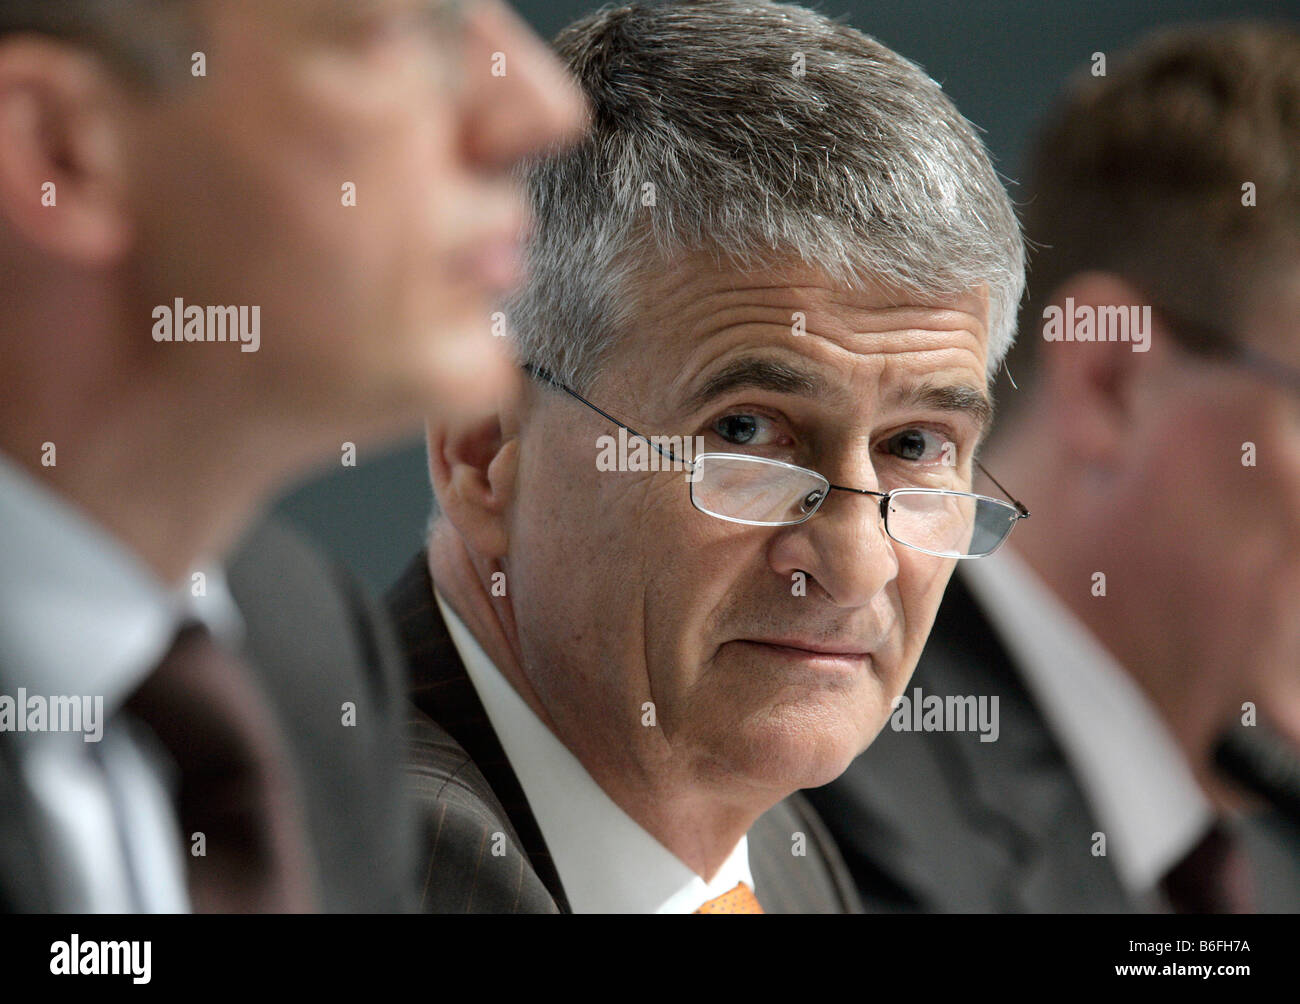 Juergen Hambrecht, Chairman of BASF SE, during the press conference on annual results on 21/02/2008 in Ludwigshafen, Stock Photo